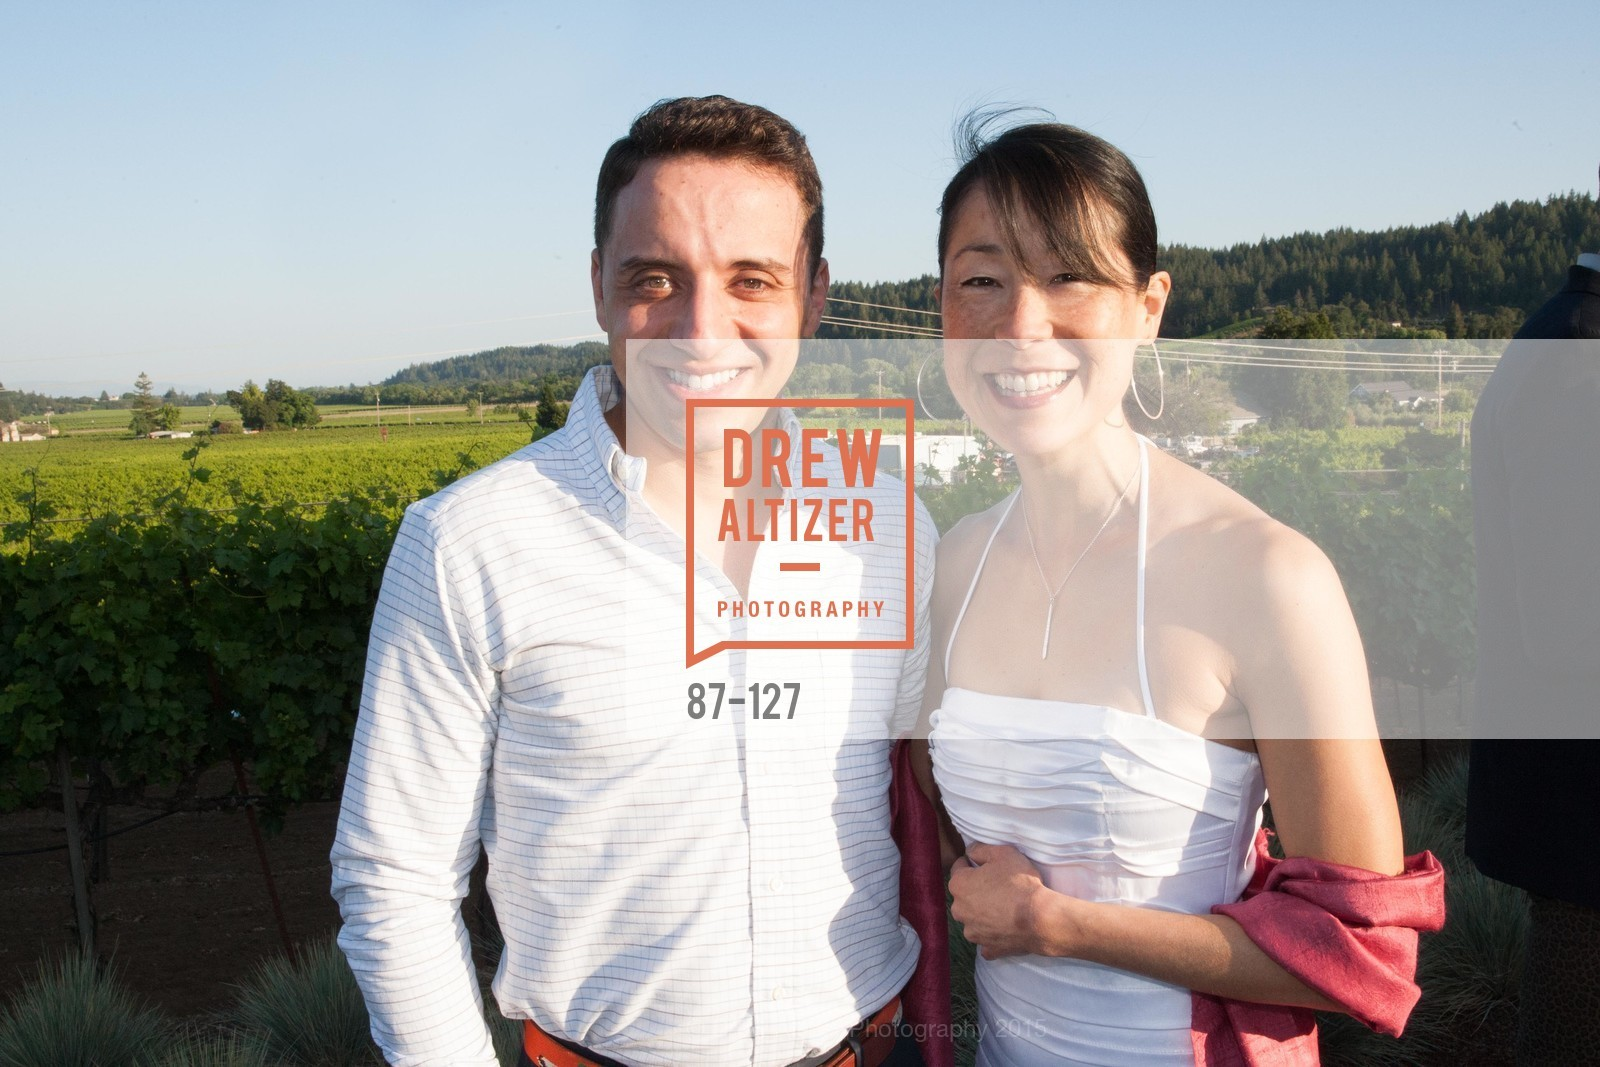 Brian Mehler, Mari Nobori, An Evening in the Vineyard hosted by JACK CALHOUN & TRENT NORRIS, Jack Calhoun & Trent Norris Vineyard. 3393 Dry Creek Road, Healdsburg CA 95448, May 22nd, 2015,Drew Altizer, Drew Altizer Photography, full-service agency, private events, San Francisco photographer, photographer california